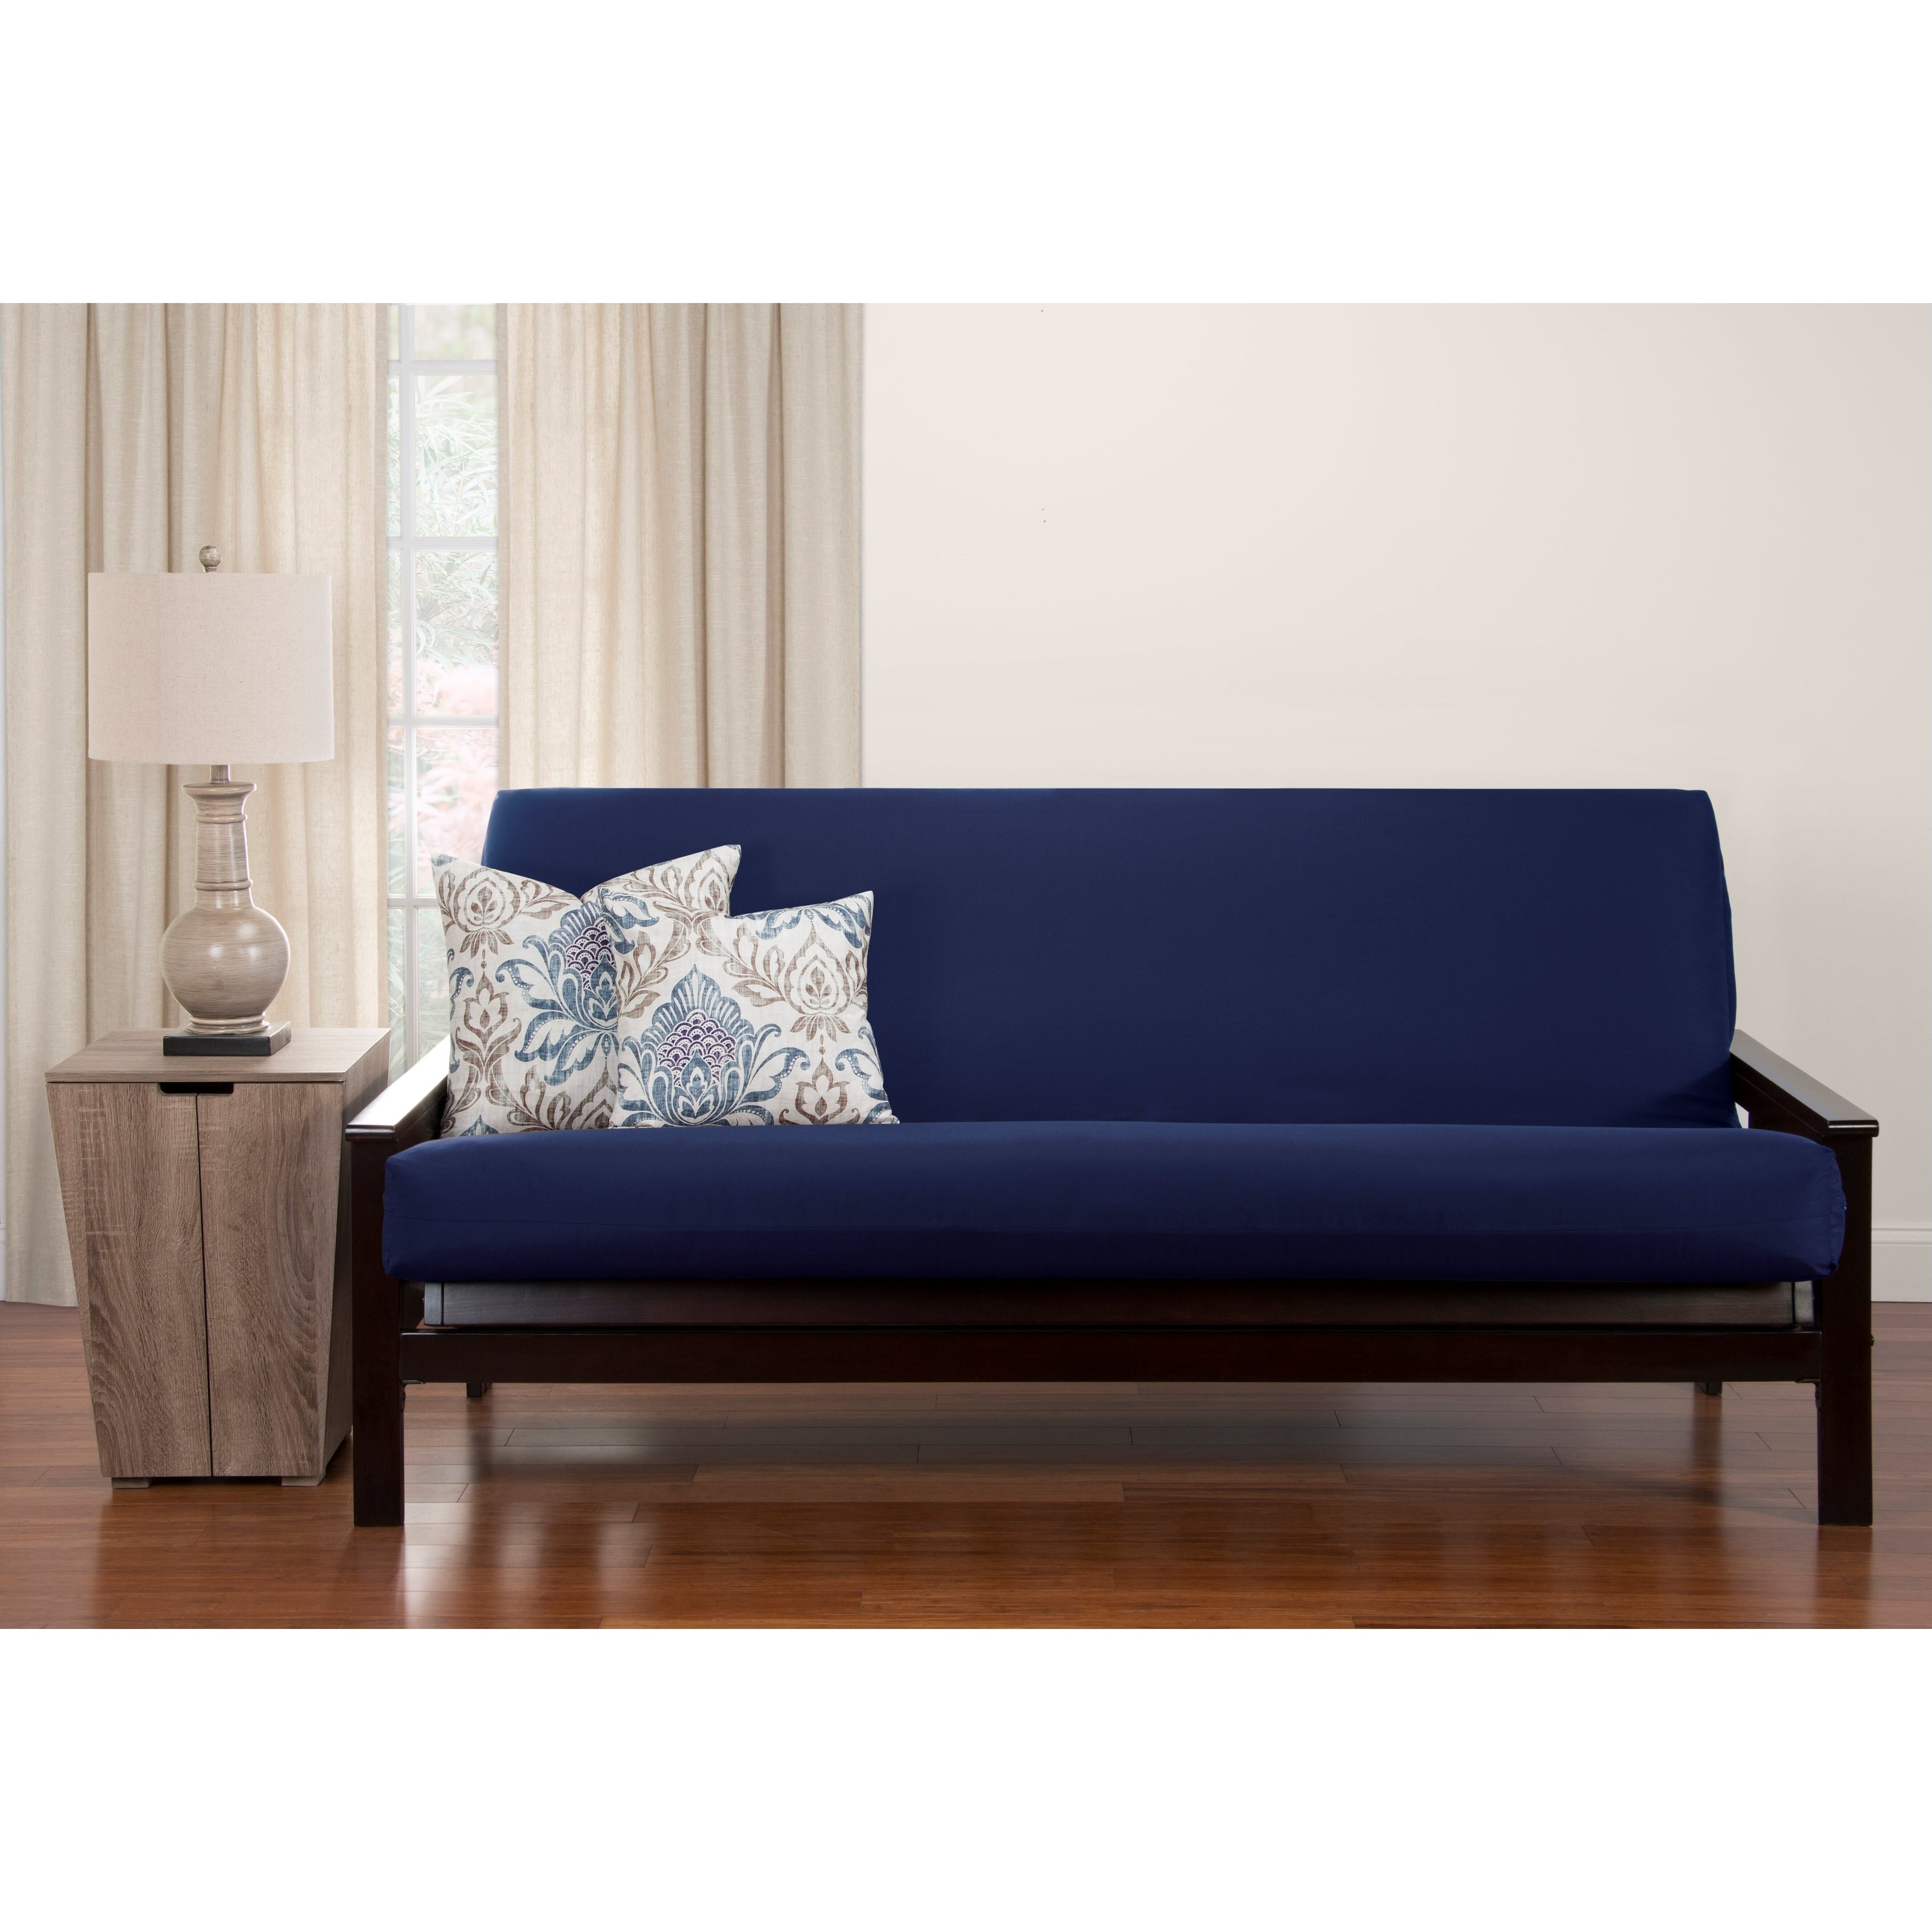 Blue Futon Covers Online At Com Our Best Slipcovers Furniture Deals